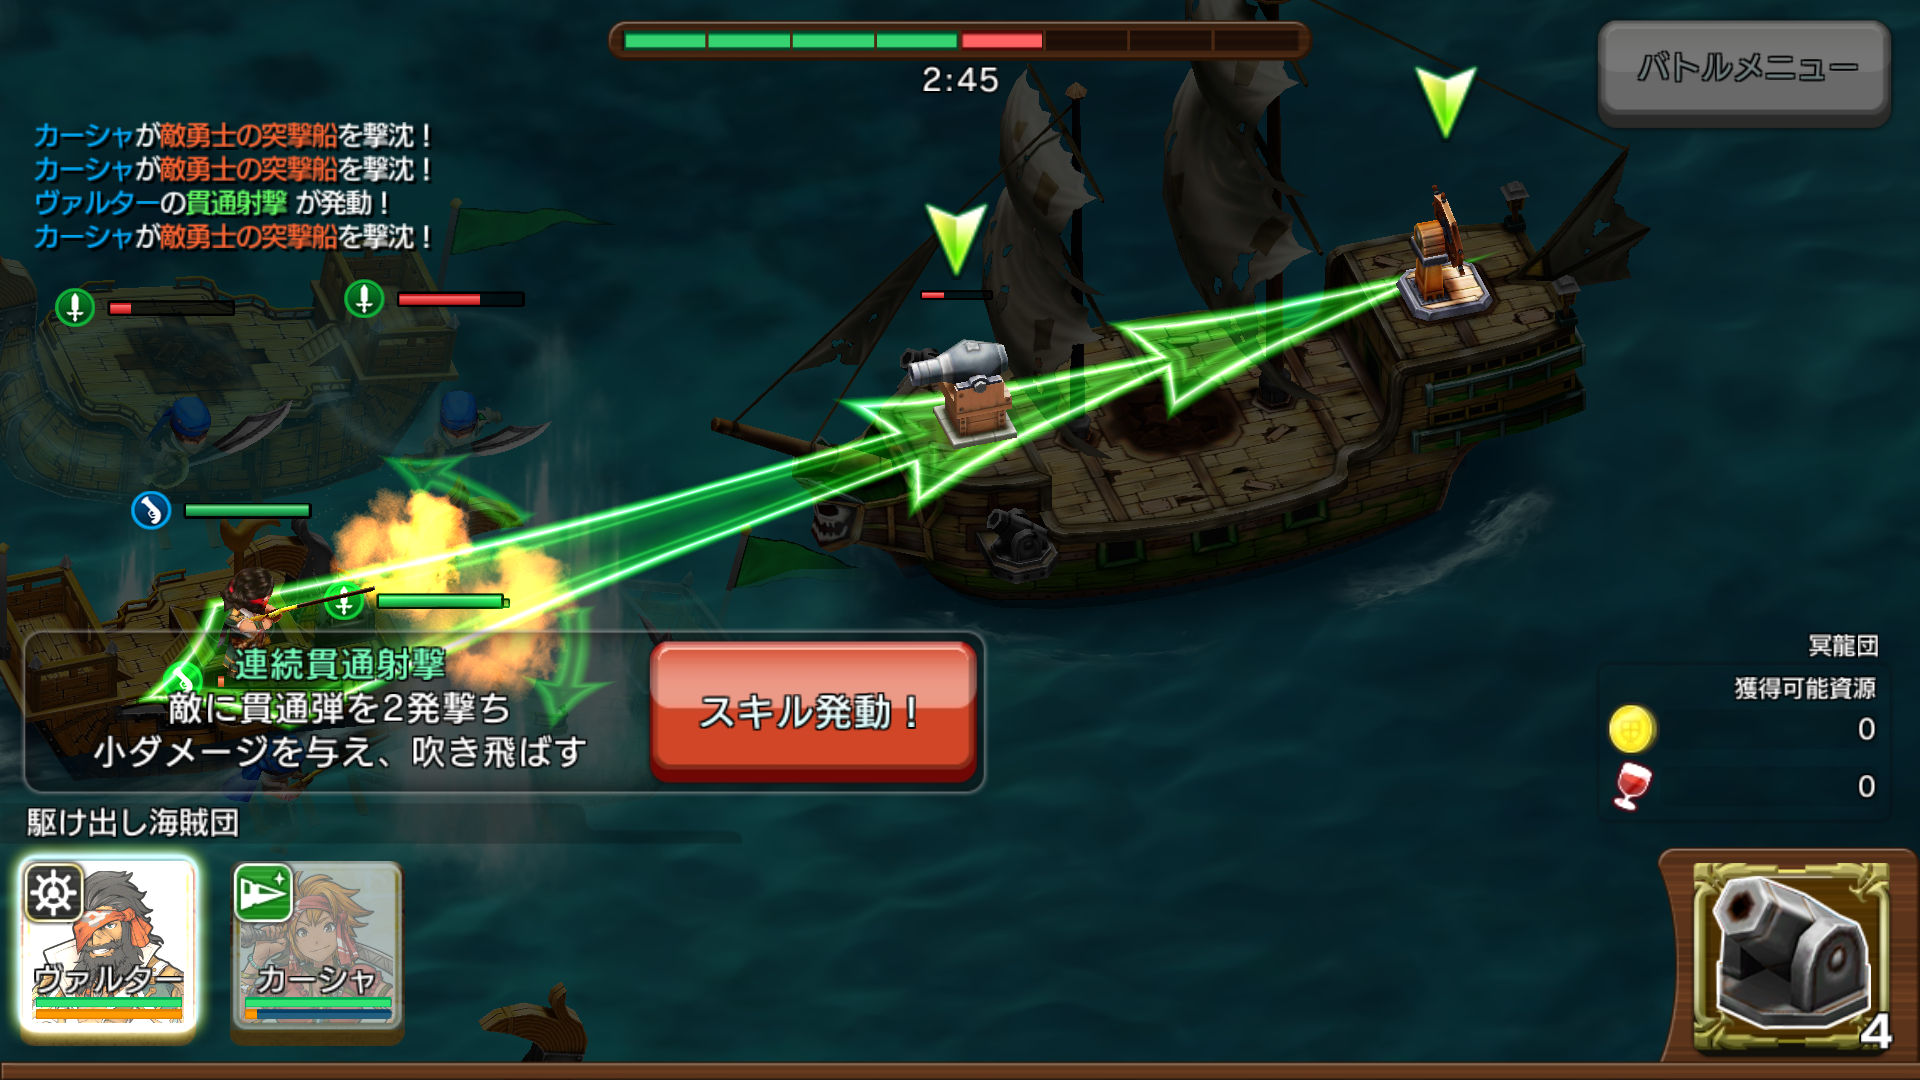 androidアプリ 戦の海賊(センノカ)攻略スクリーンショット3